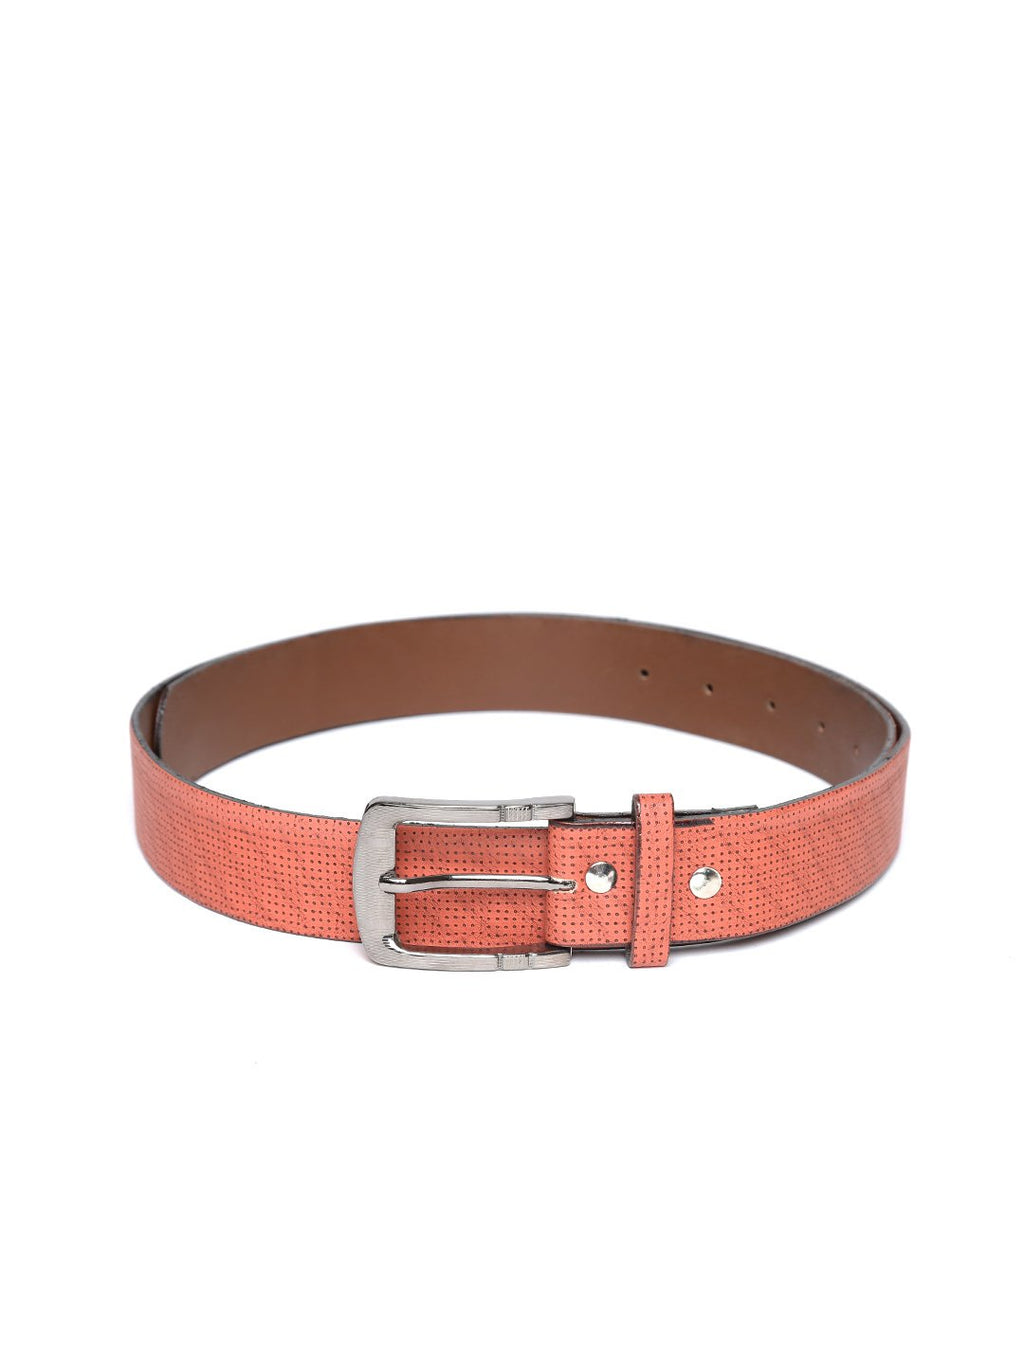 Lazy panda dark brown dotted on brown leather belt for men